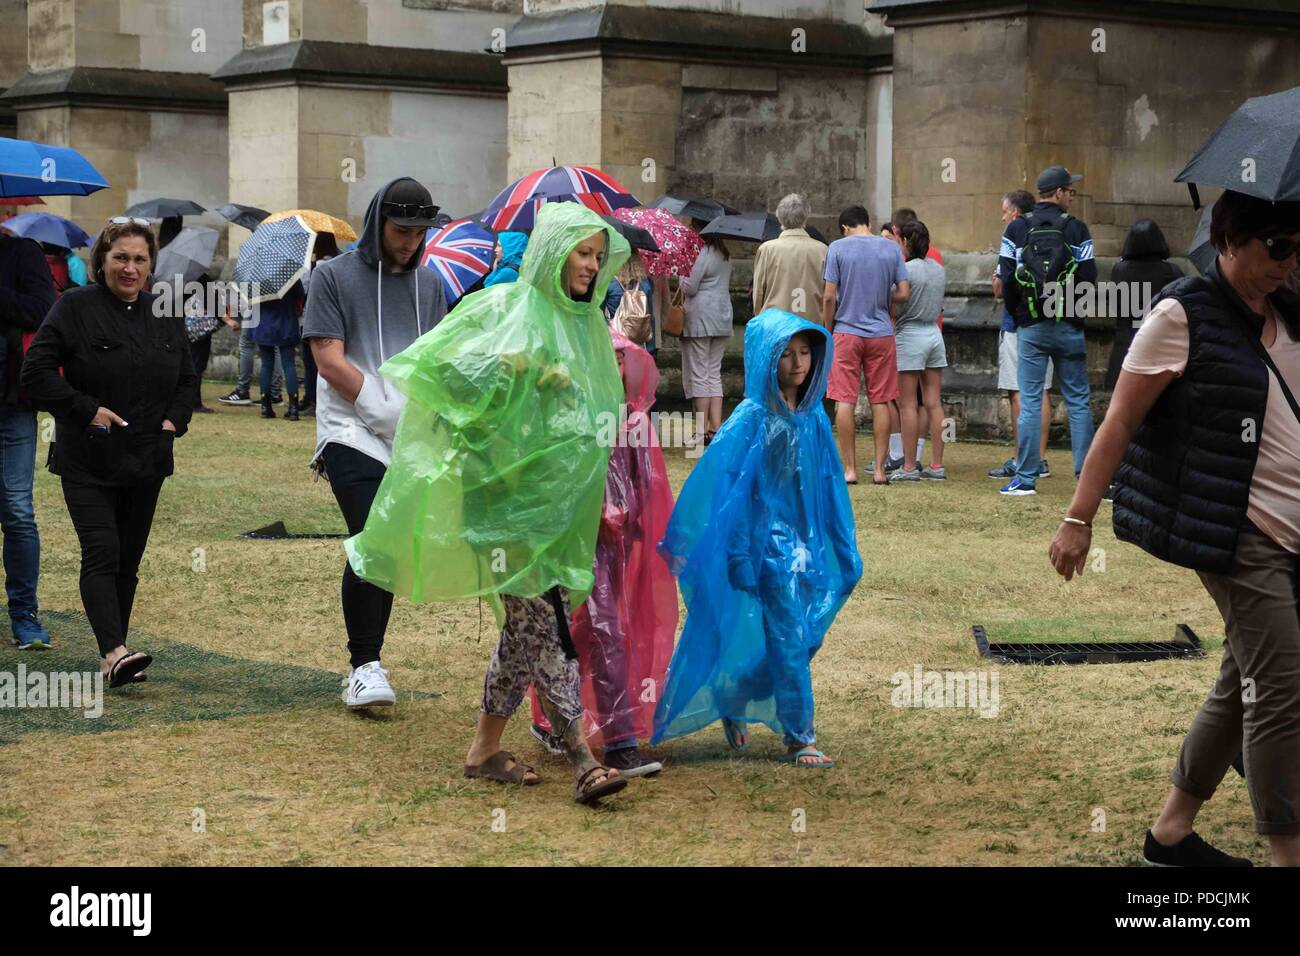 London 9th August 2018:  Visitors queue at Westminster Abbey in heavy rain . Credit: Claire Doherty/Alamy Live News - Stock Image